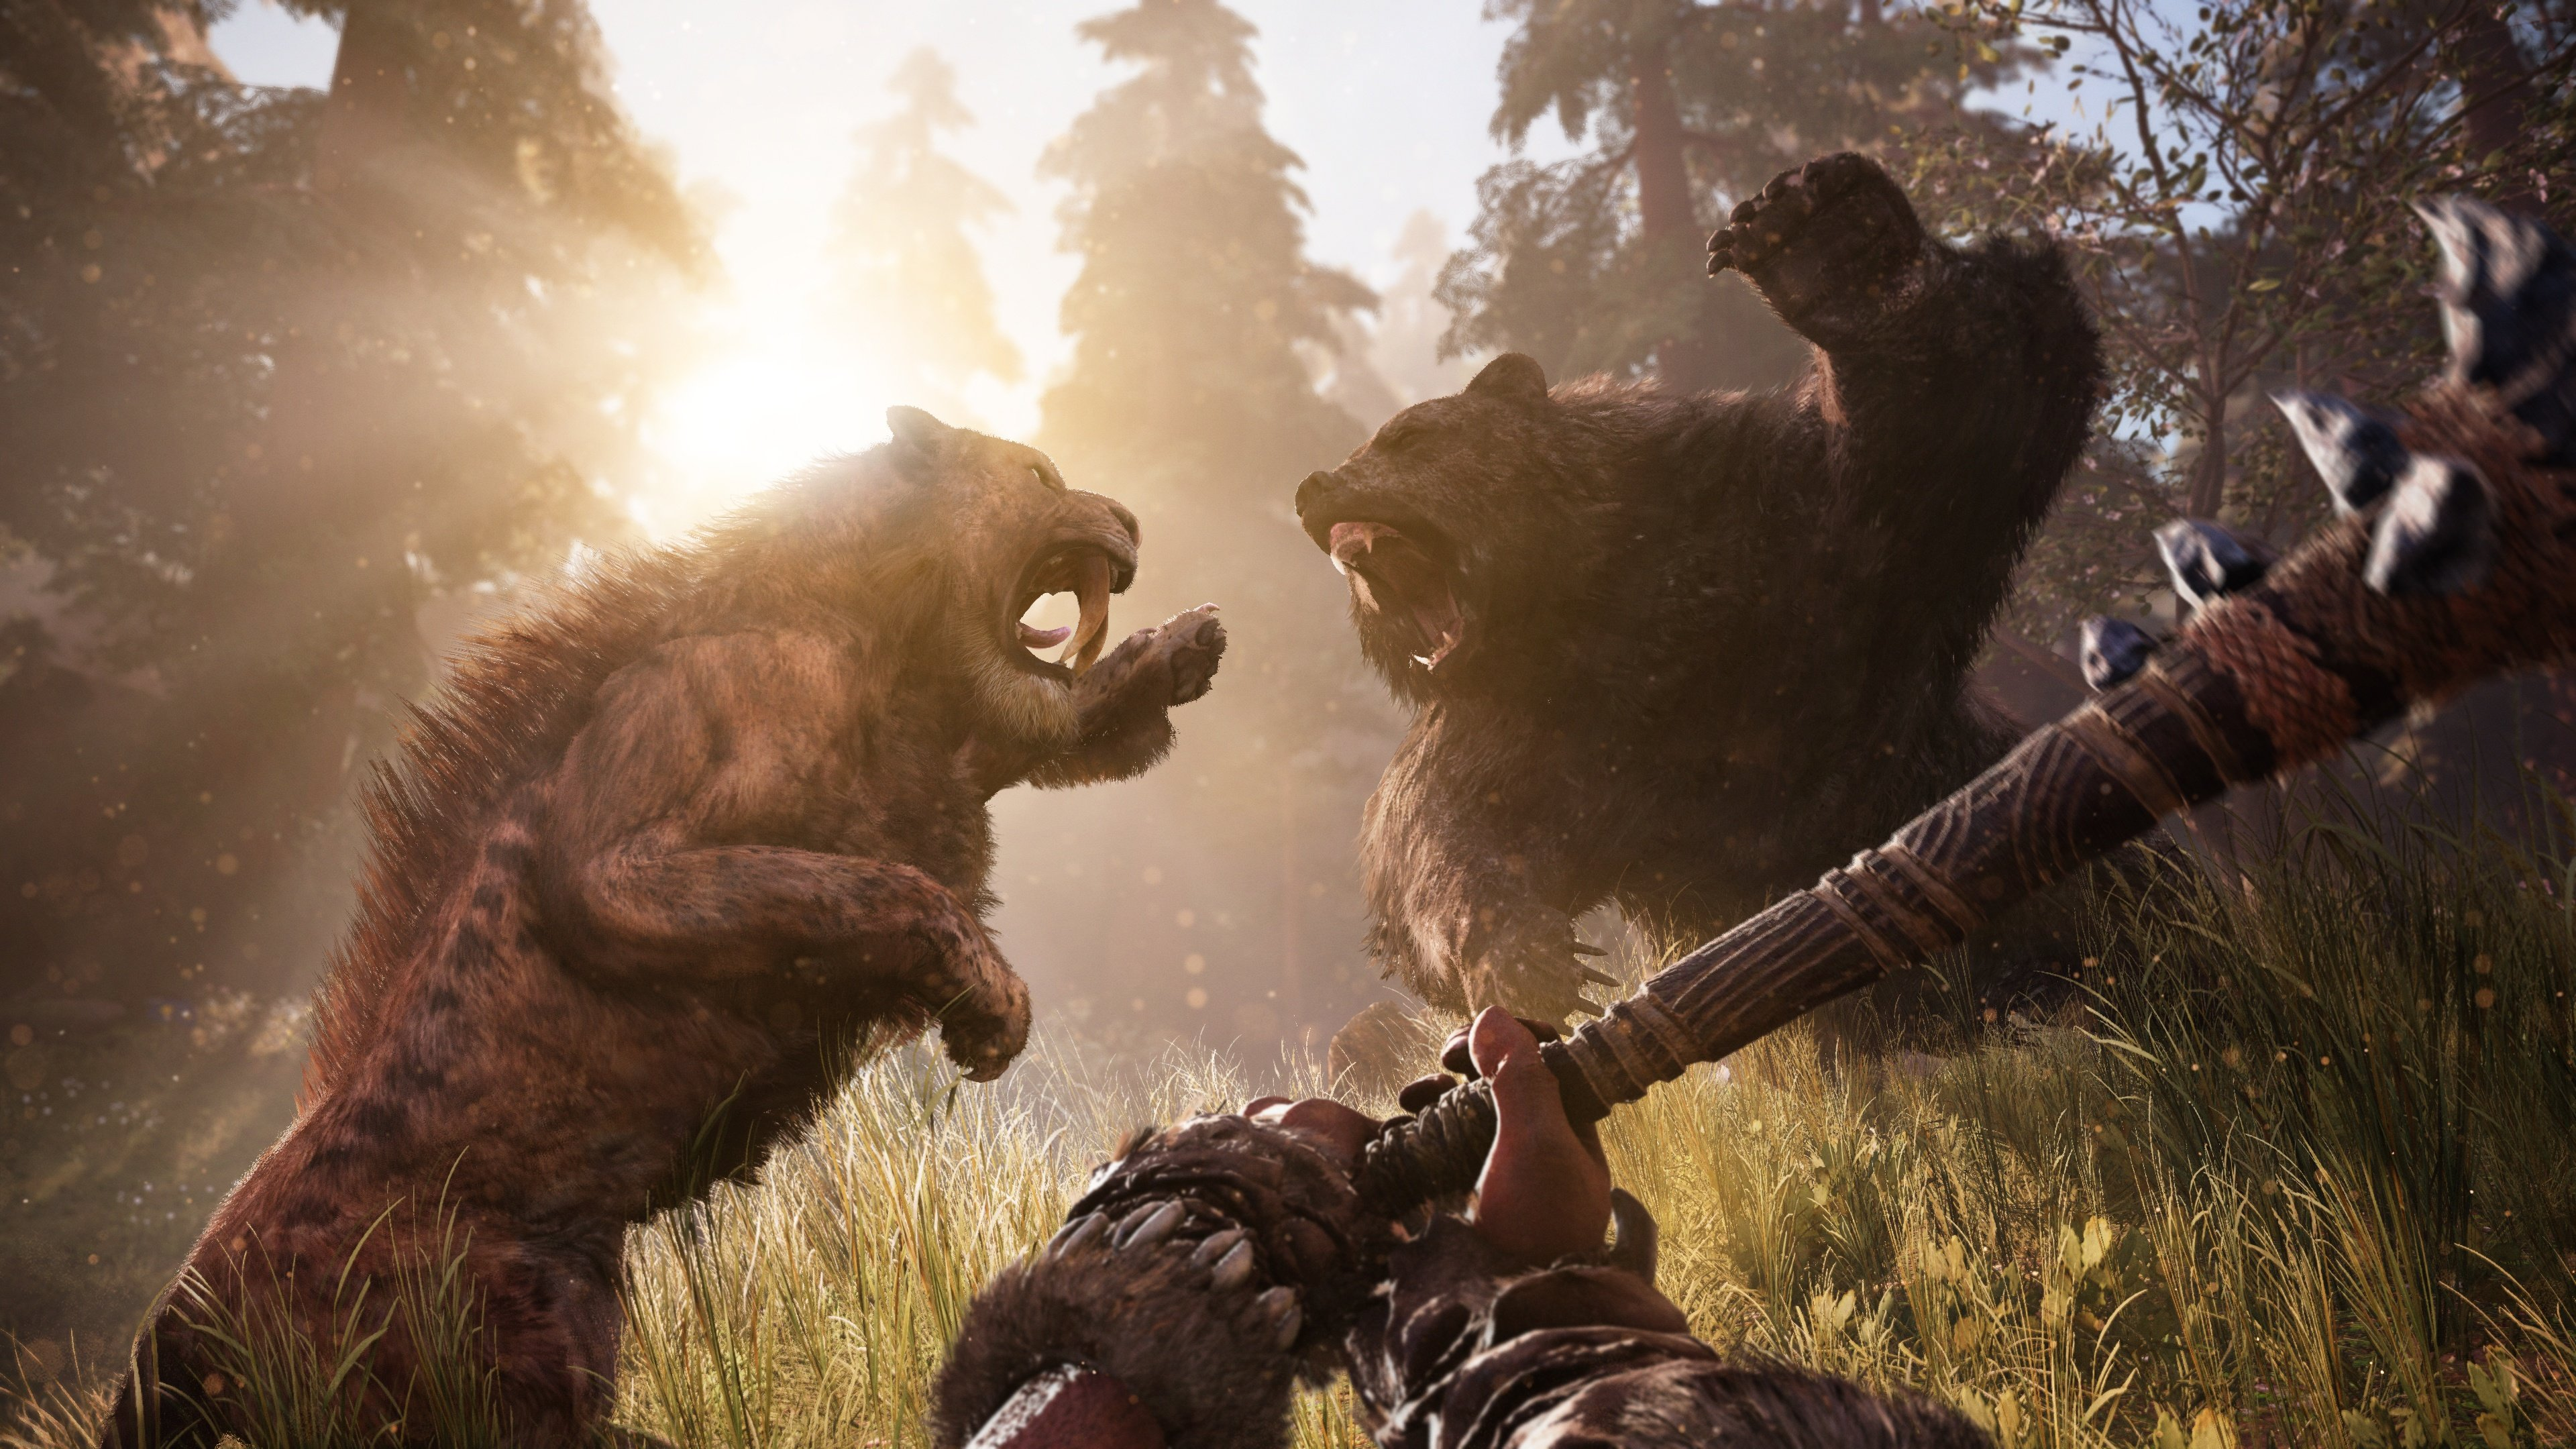 Far Cry Primal Wallpapers 3840x2160 Ultra Hd 4k Desktop Backgrounds